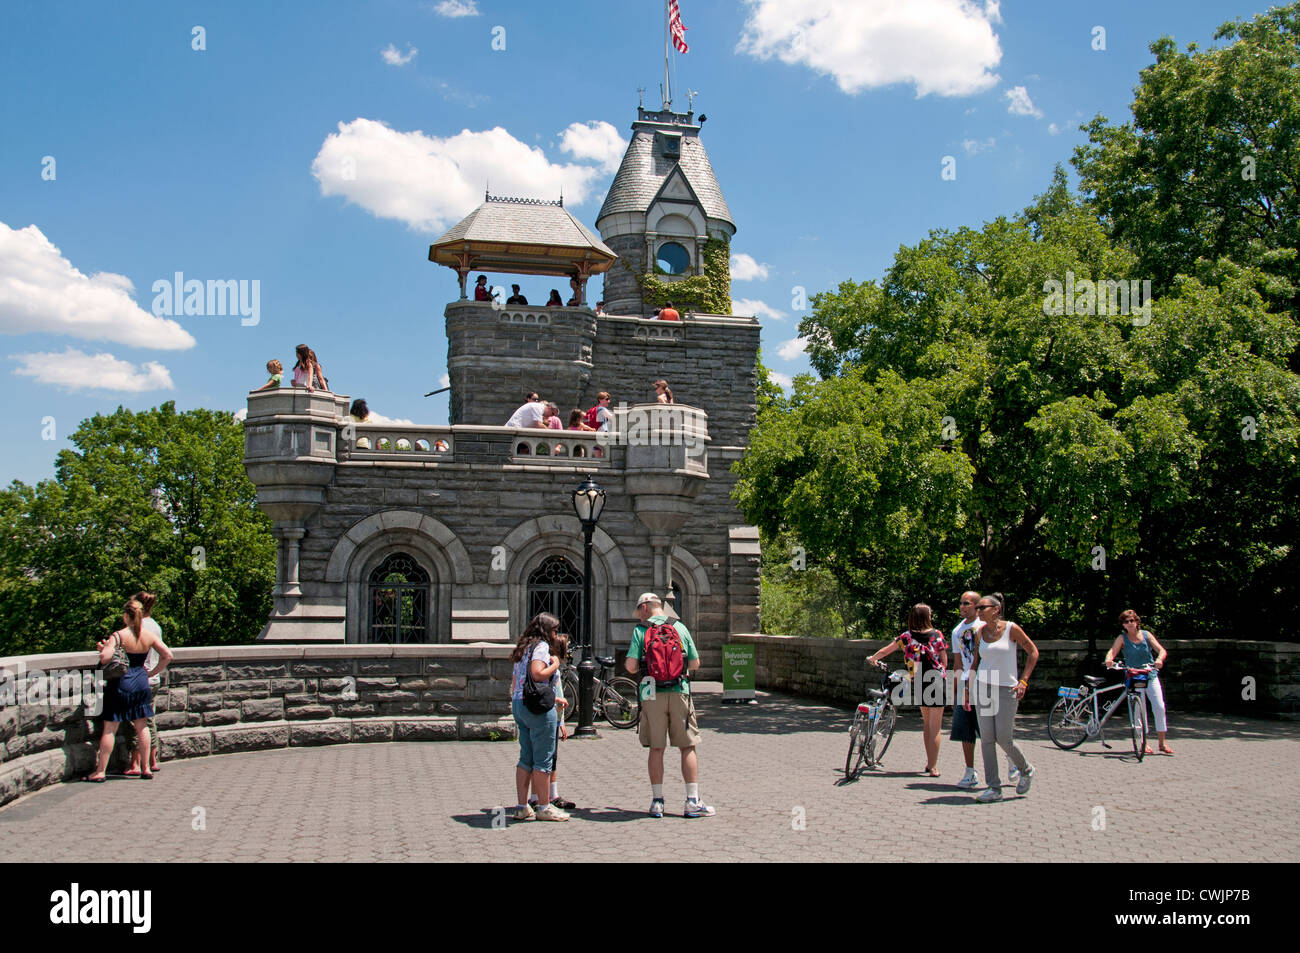 Belvedere Castle is a building in Central Park in New York City Manhattan United States - Stock Image